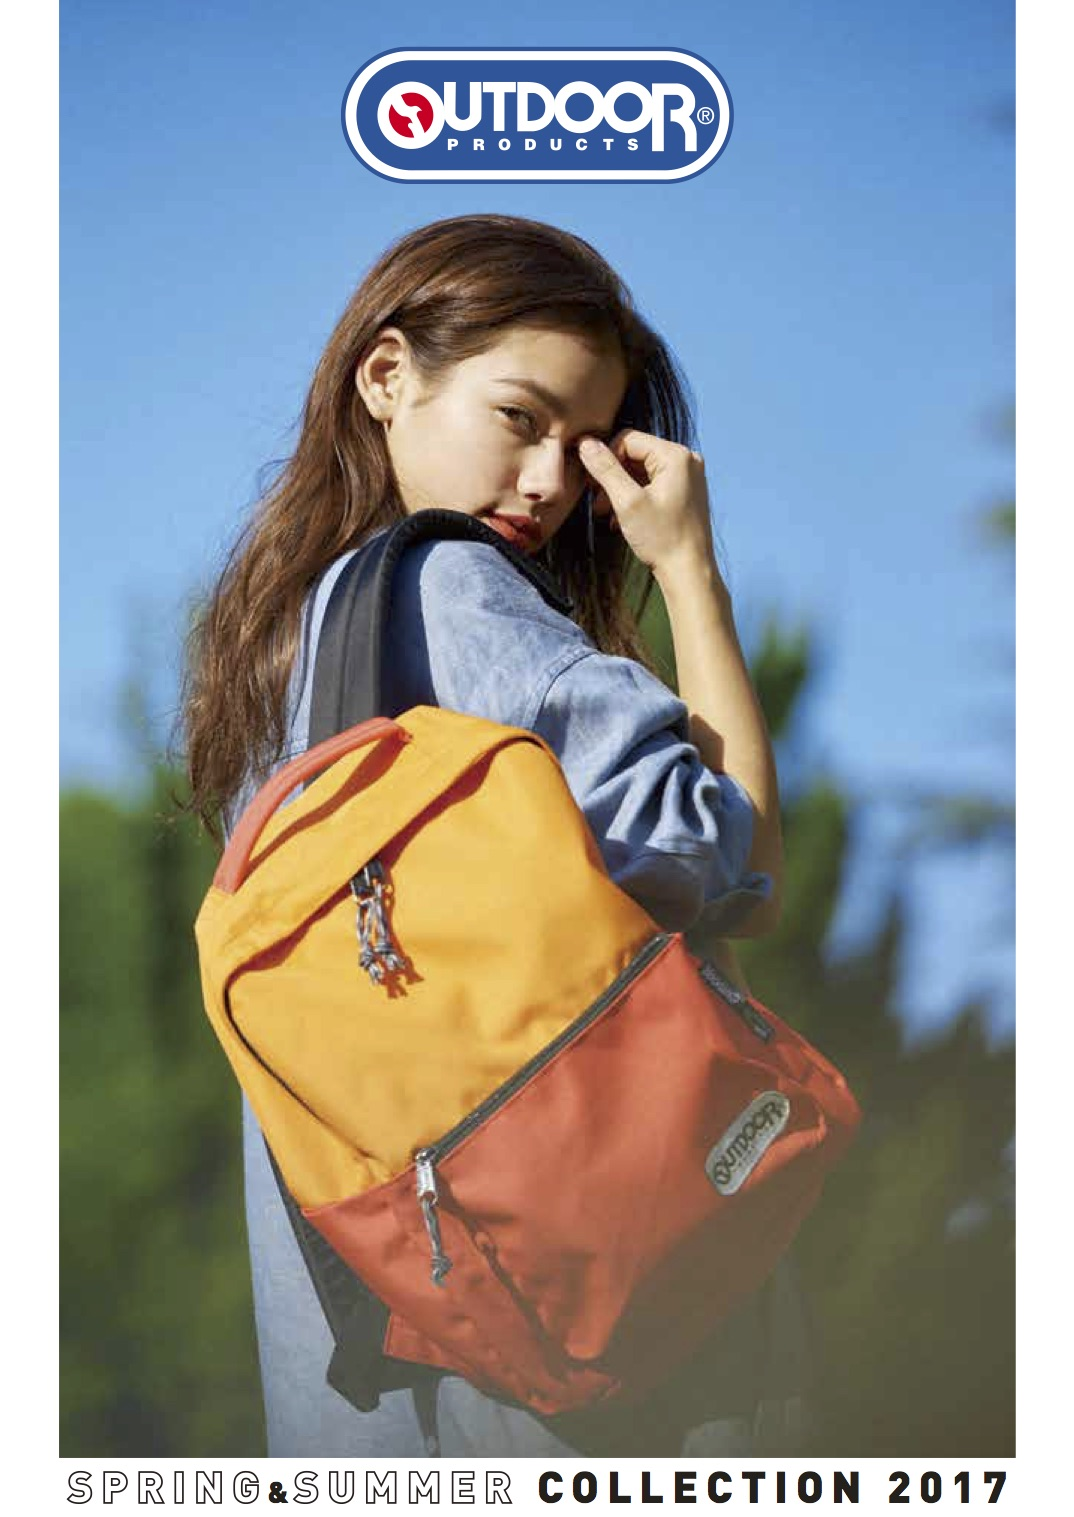 outdoorproducts2017ss_7のコピー1